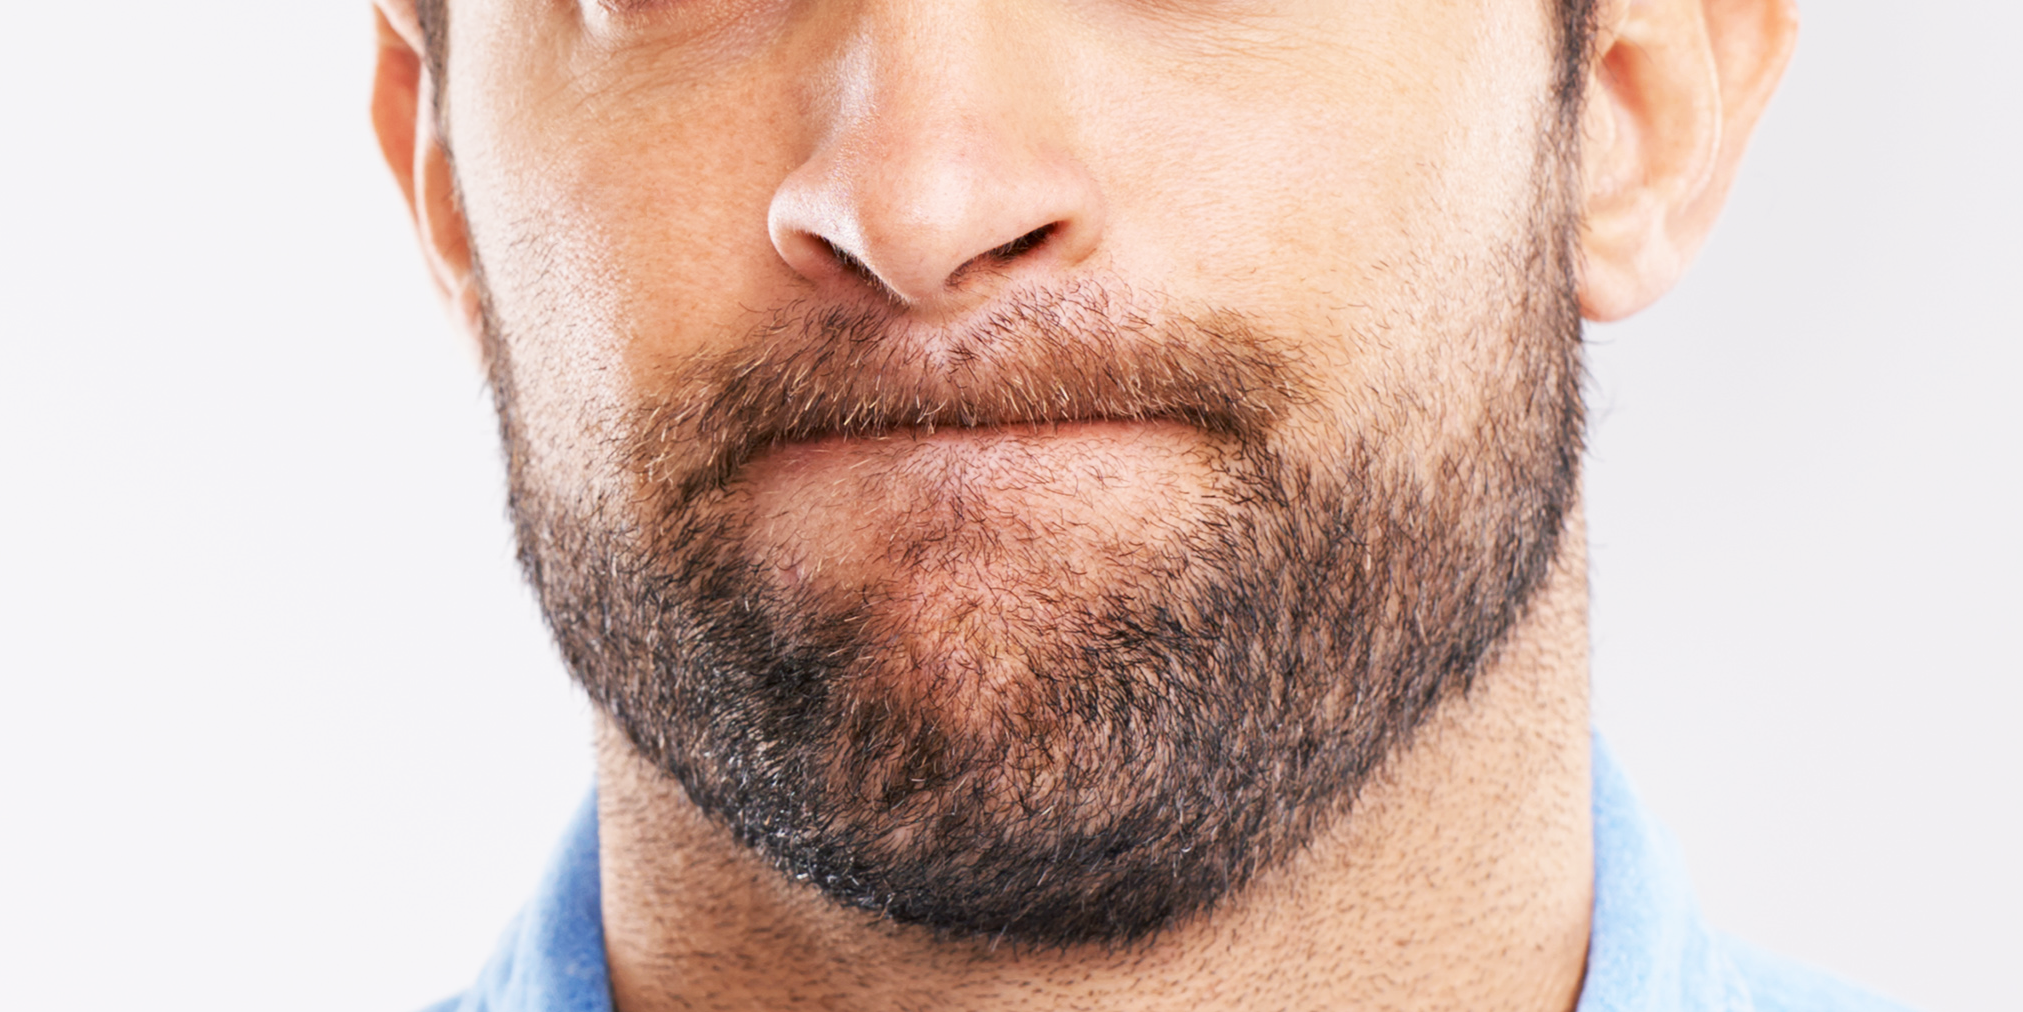 6 Ways to Get Rid of a Cold Sore Fast